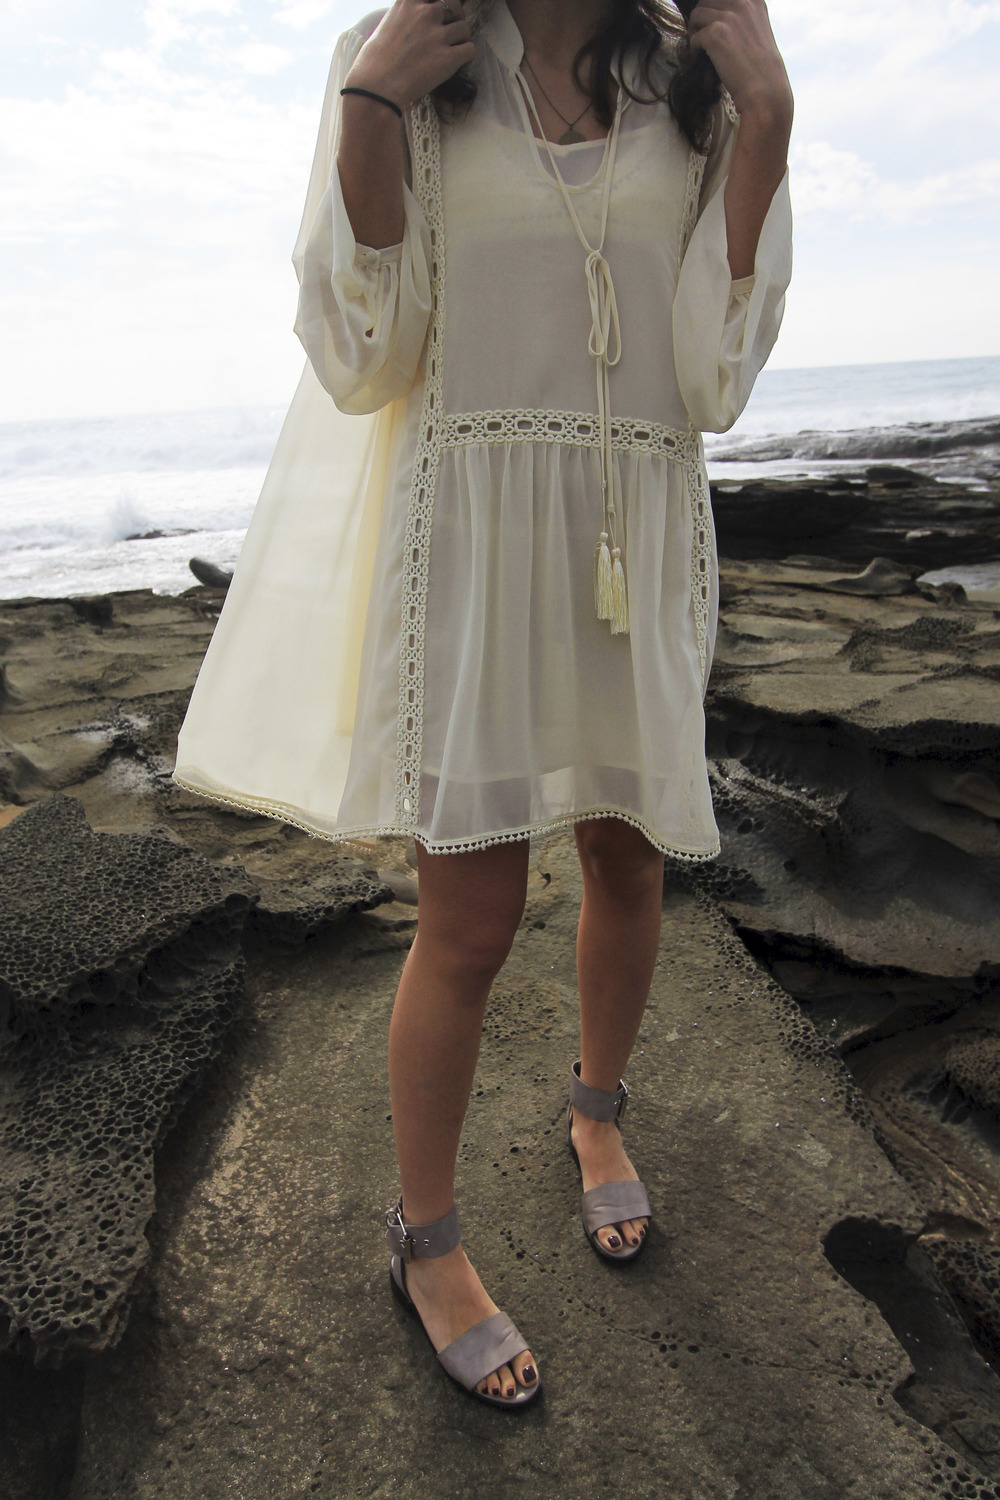 70s-chloe-inspired-cream-dress-topshop-forever-21-outfit-style.jpg